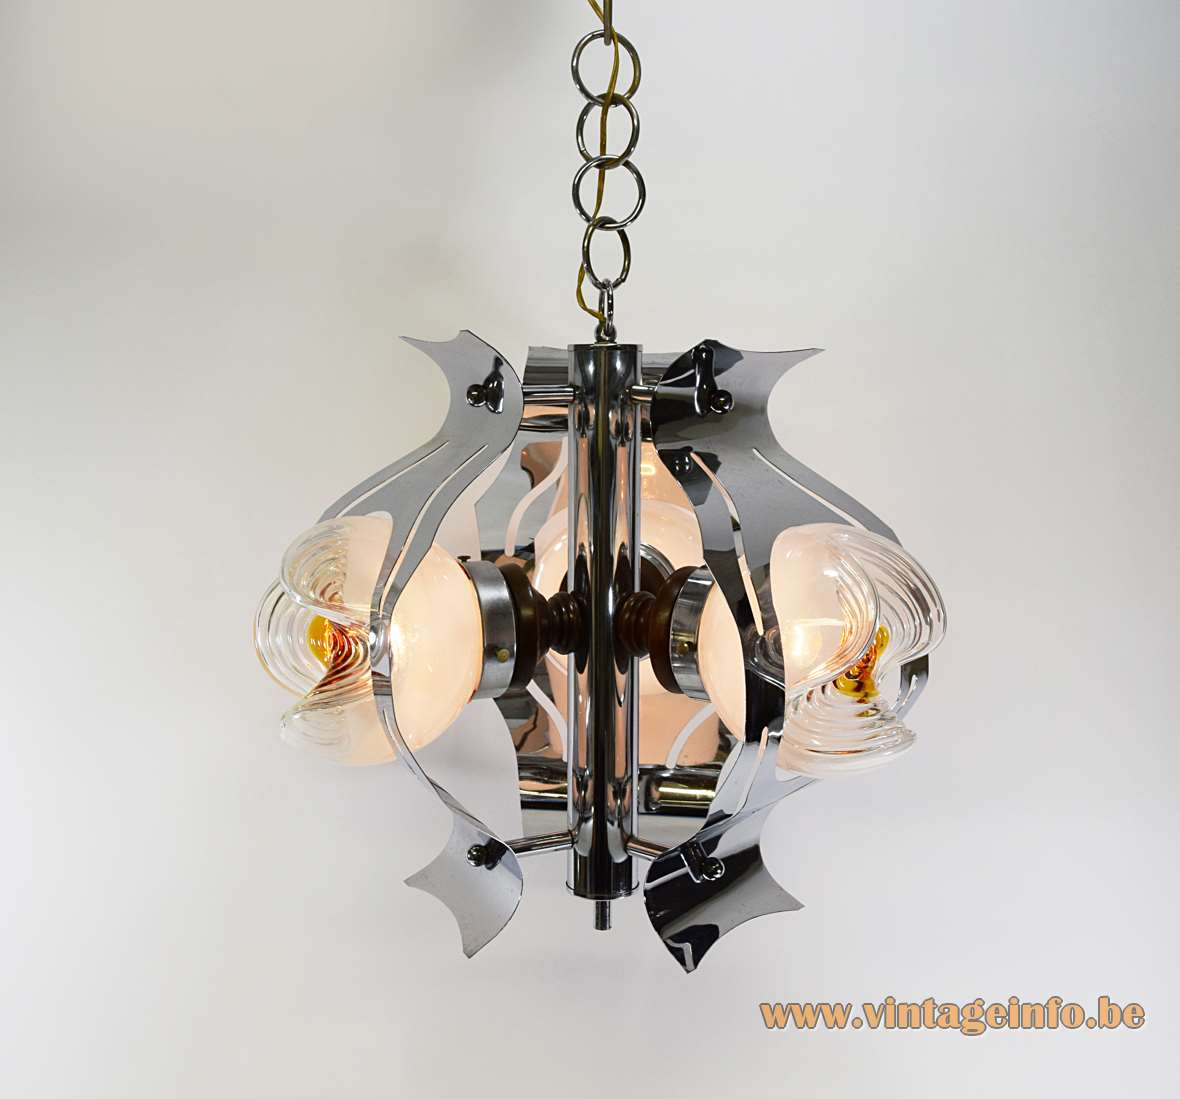 Chrome and 3 clear milky orange glass globes chandelier Toni Zuccheri AV Mazzega 1960s 1970s MCM Massive